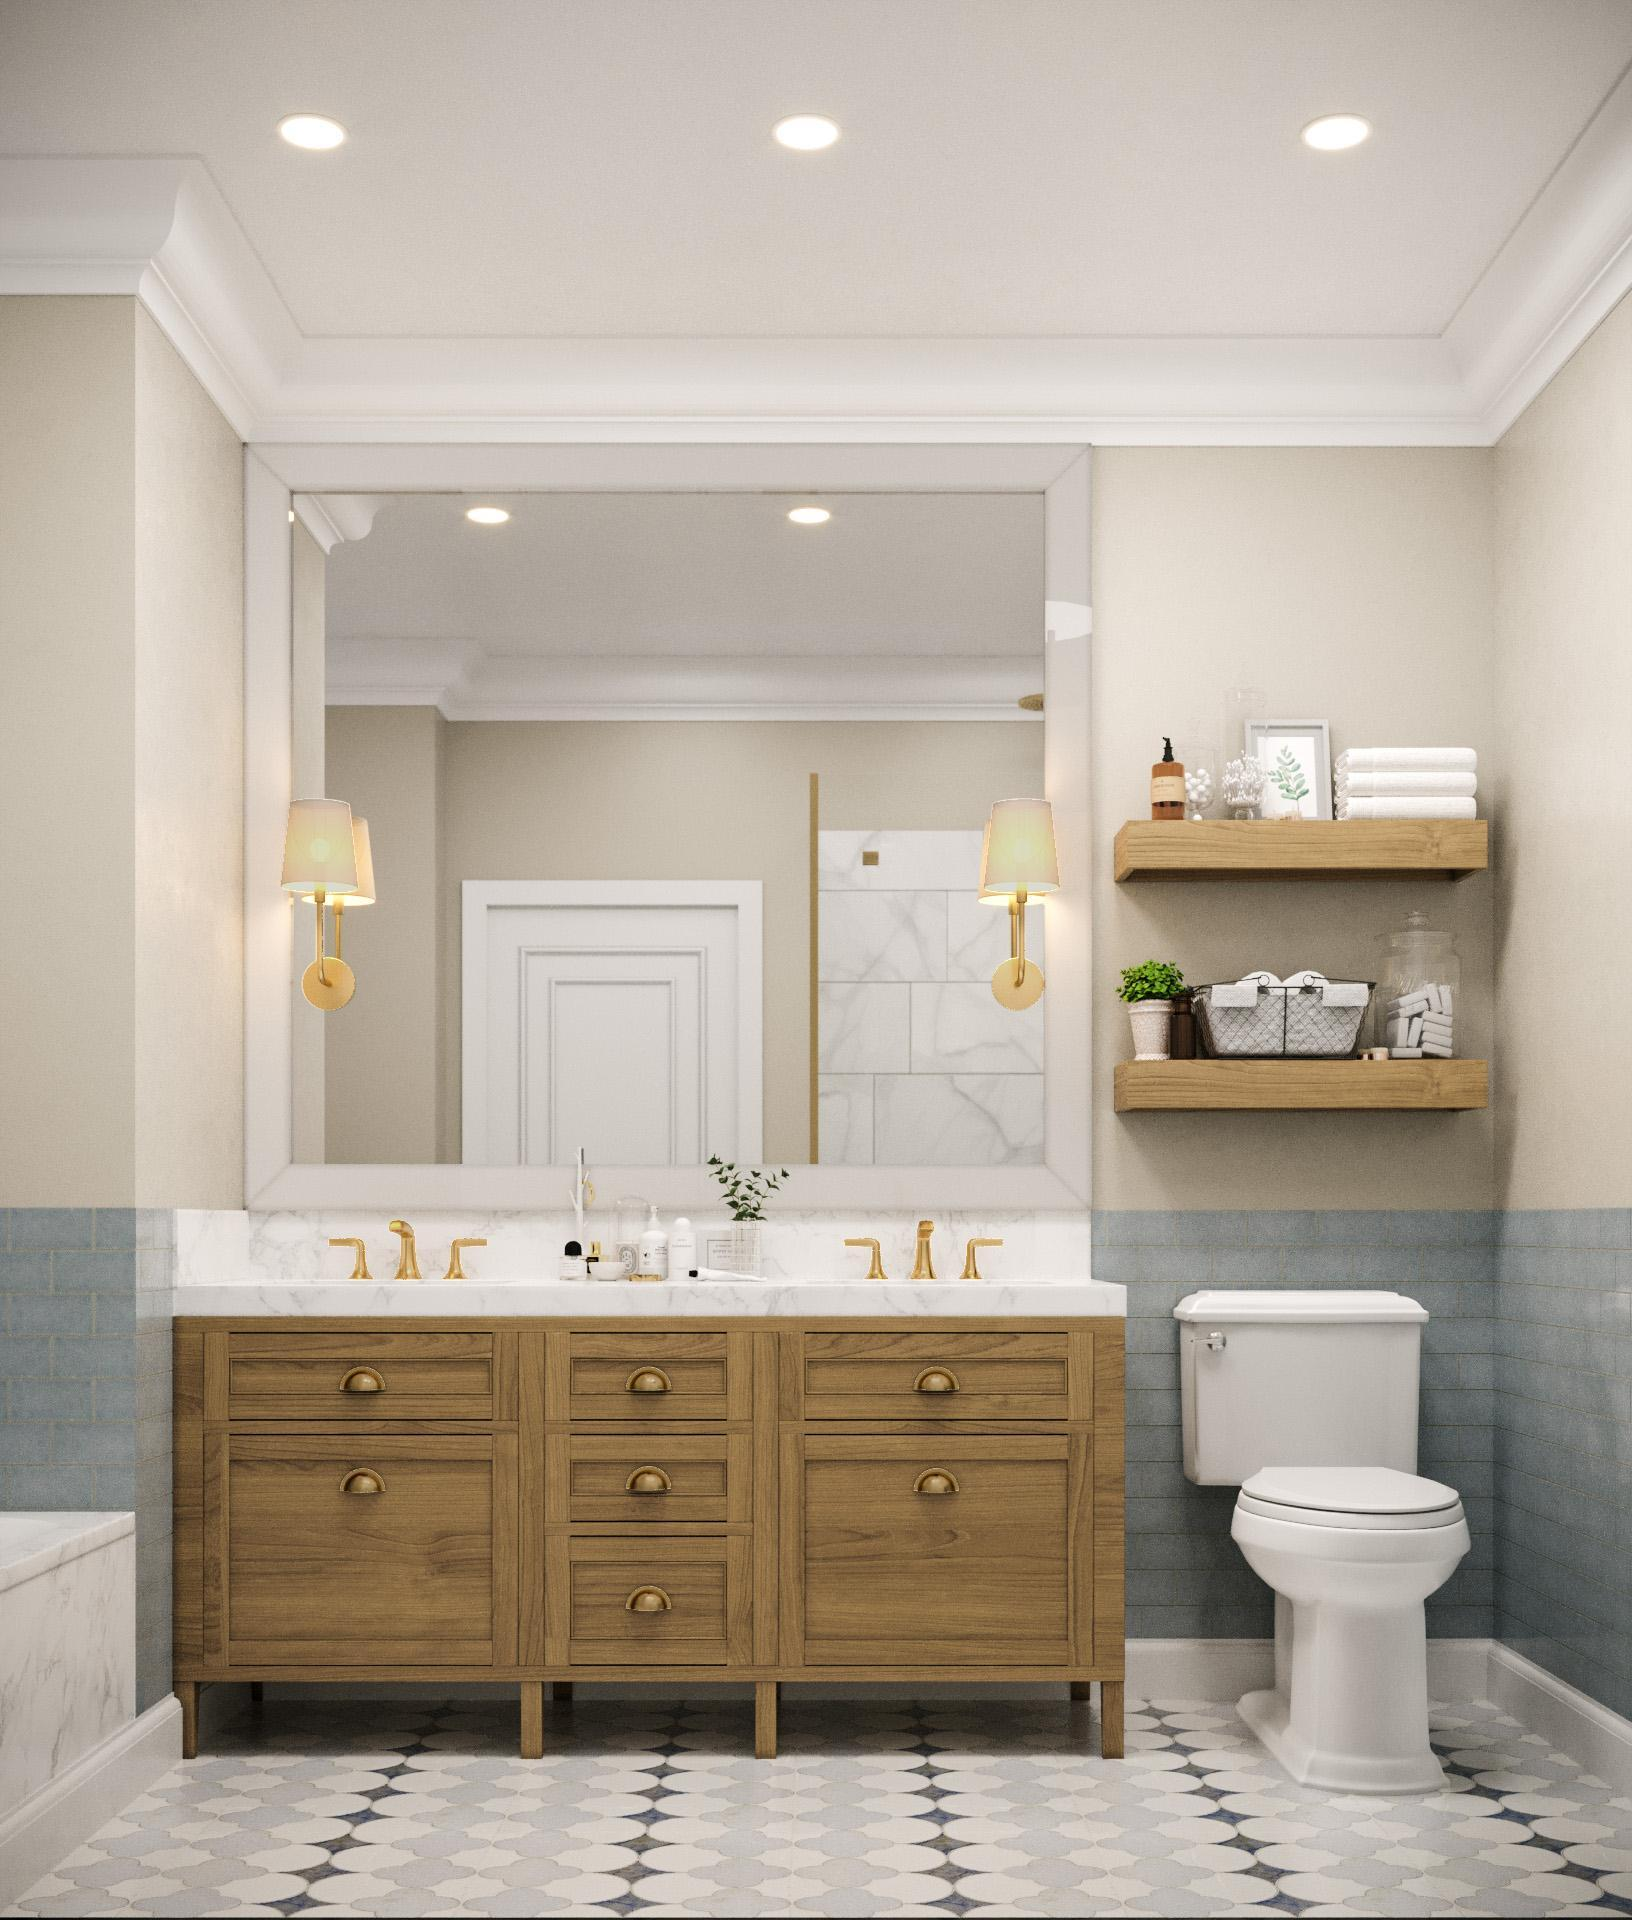 Bathroom featured in the Townhome E2 By Beechwood Homes in Nassau-Suffolk, NY